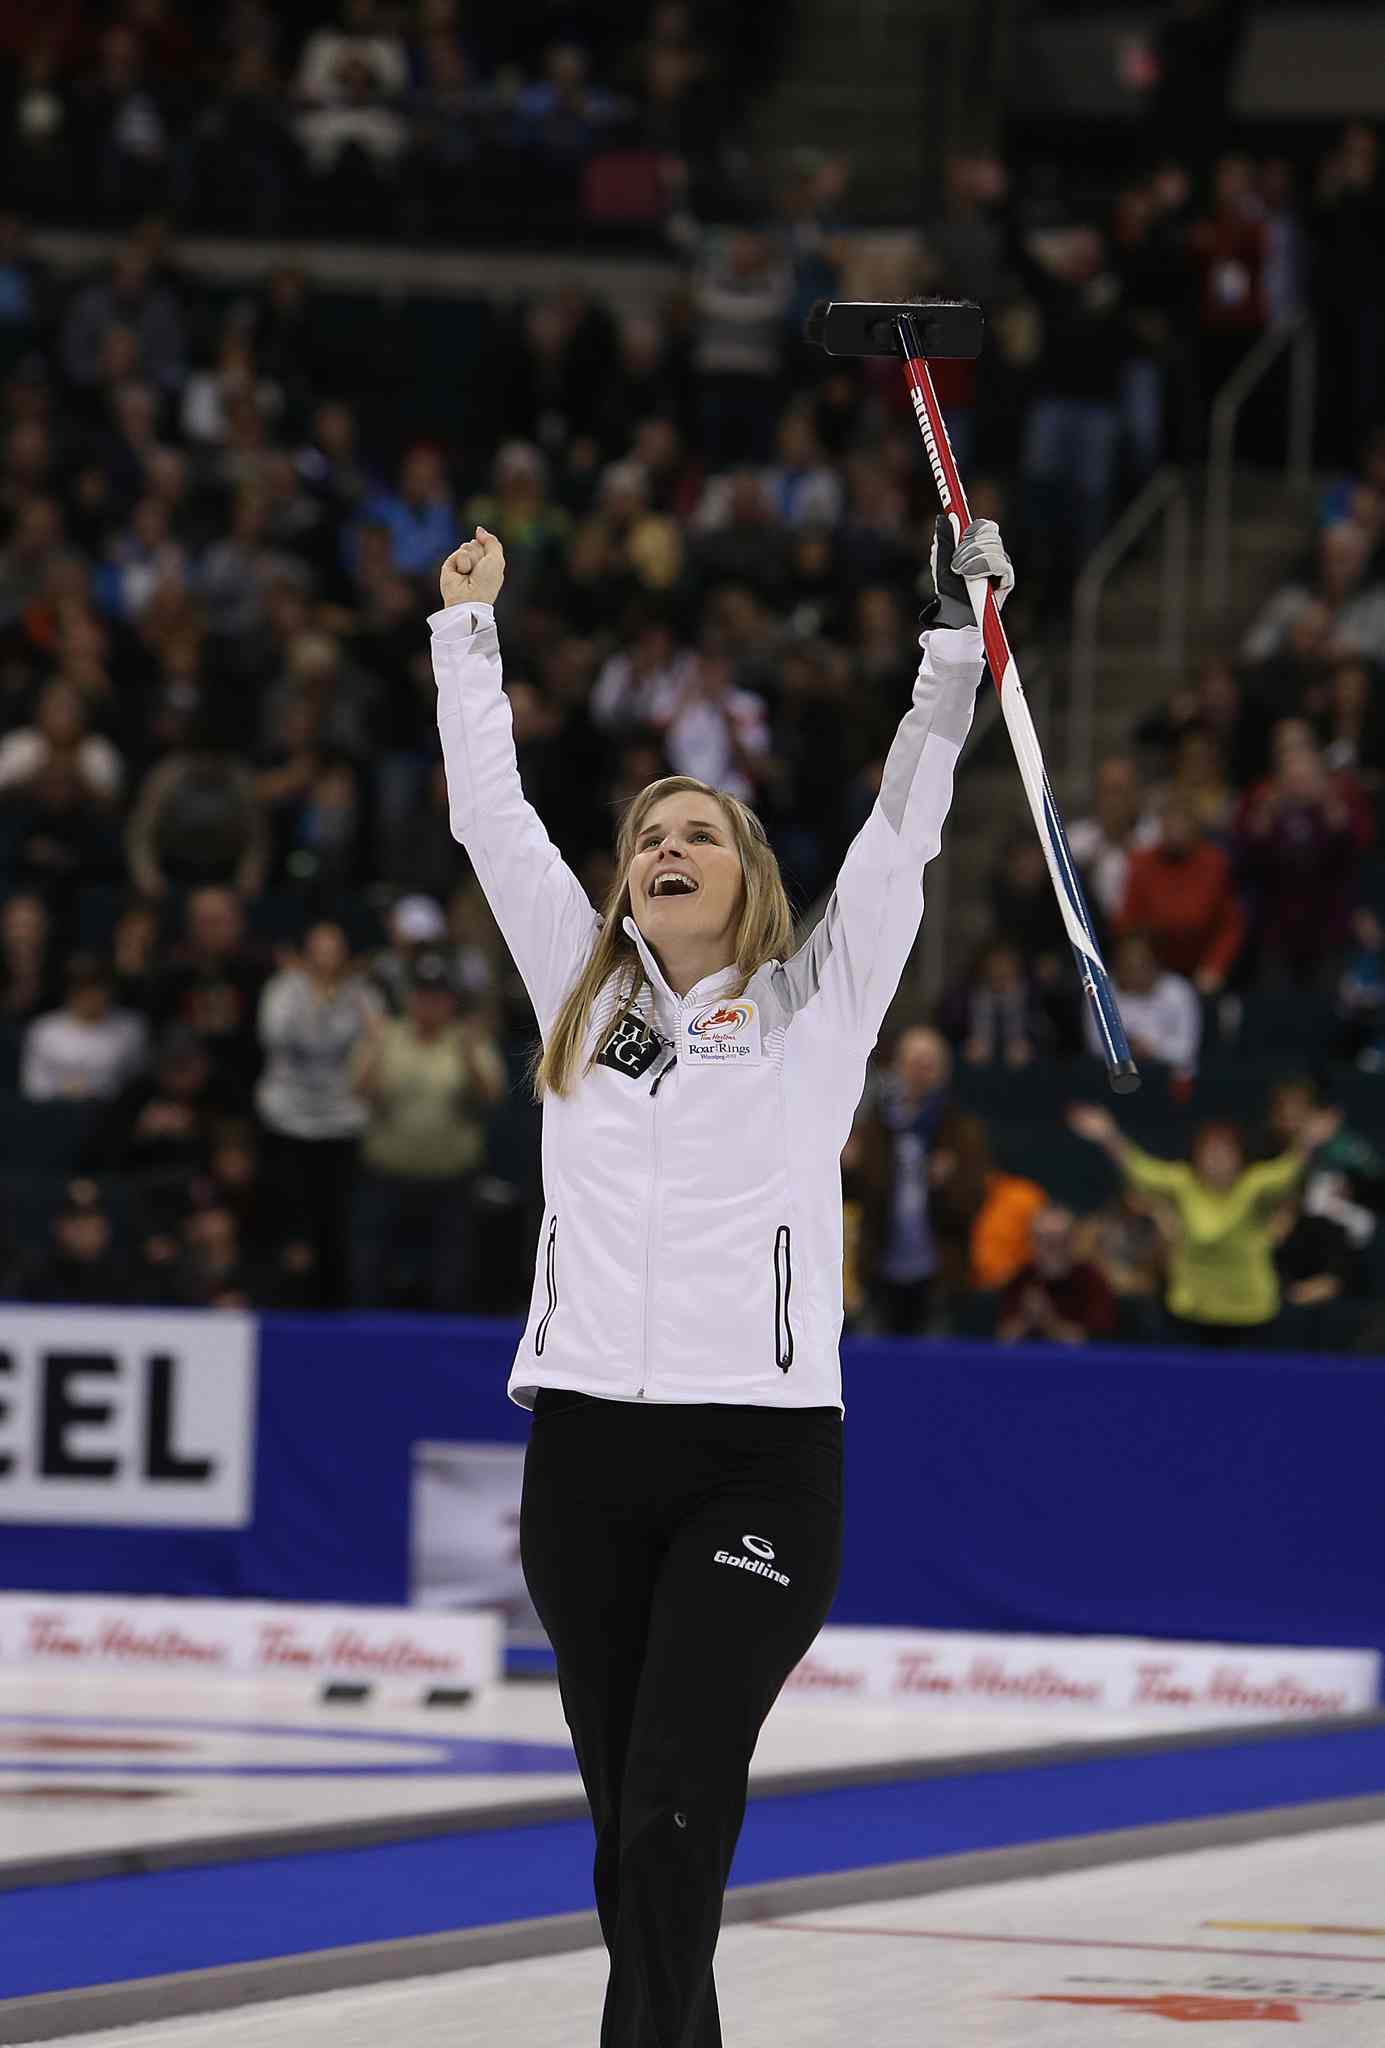 Jennifer Jones celebrates after defeating Sherry Middaugh in the women's final of Roar of the Rings curling at the MTS Centre Saturday.